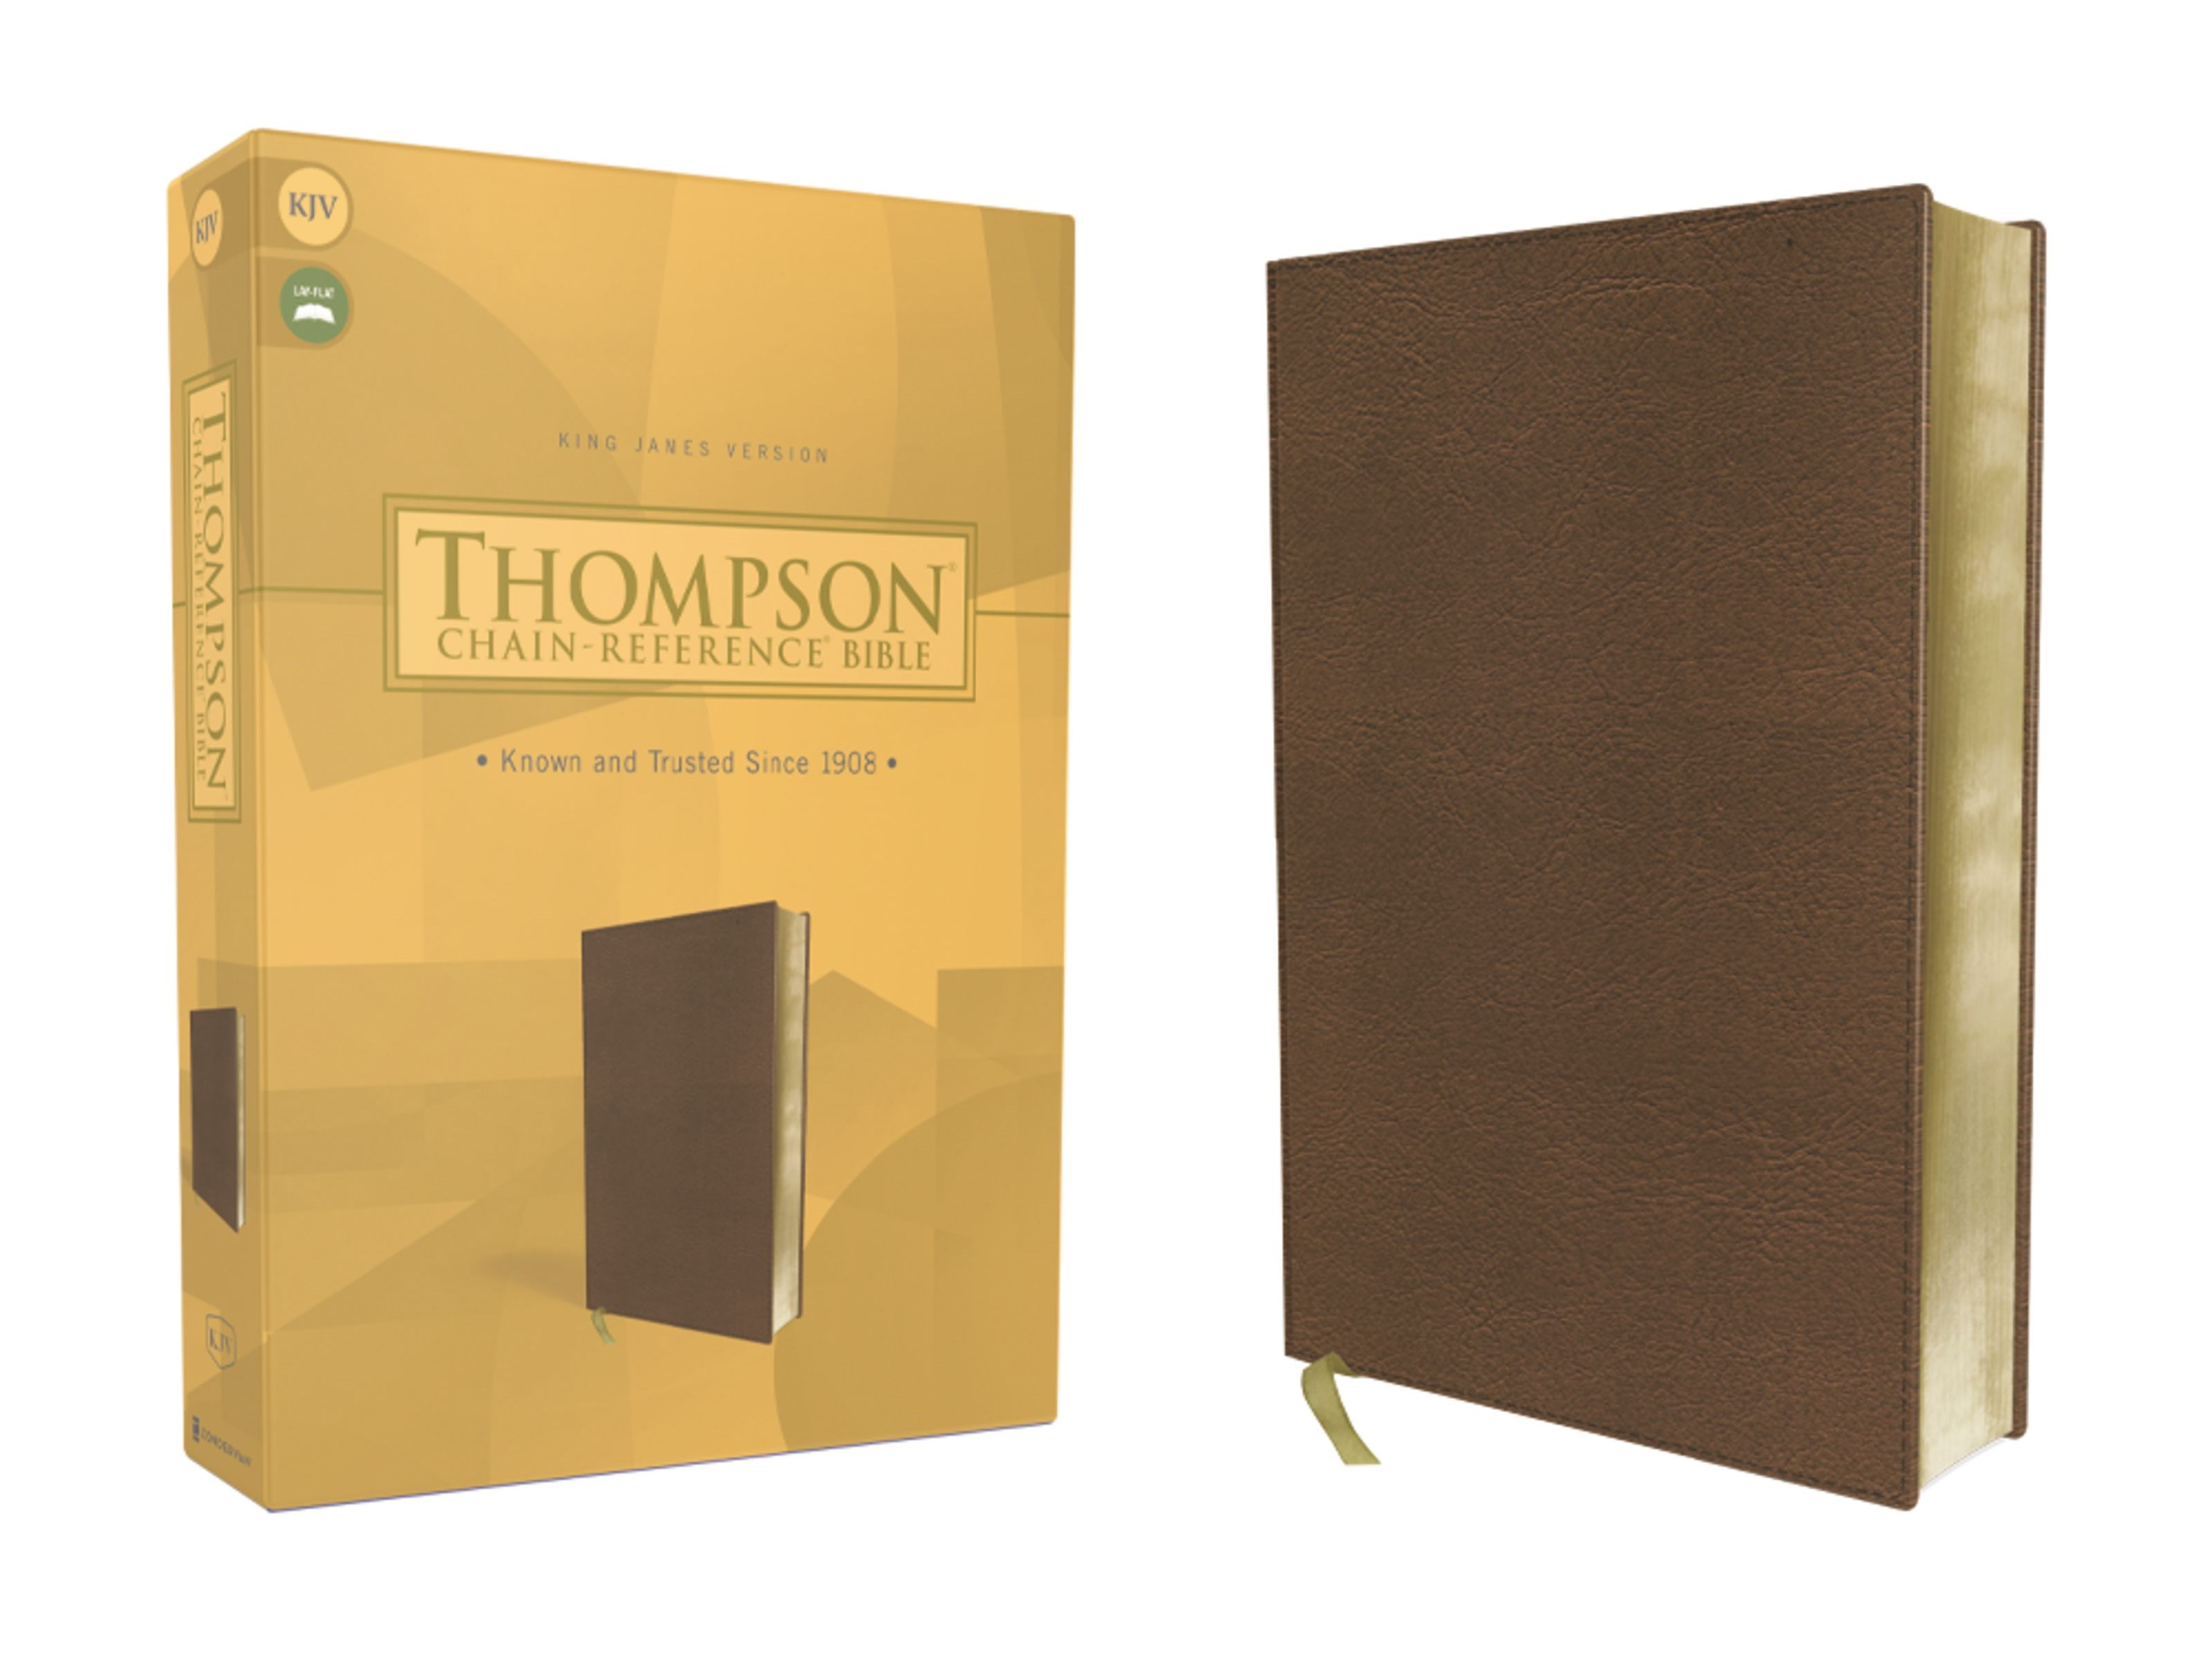 KJV Thompson Chain-Reference Bible-Brown Leathersoft